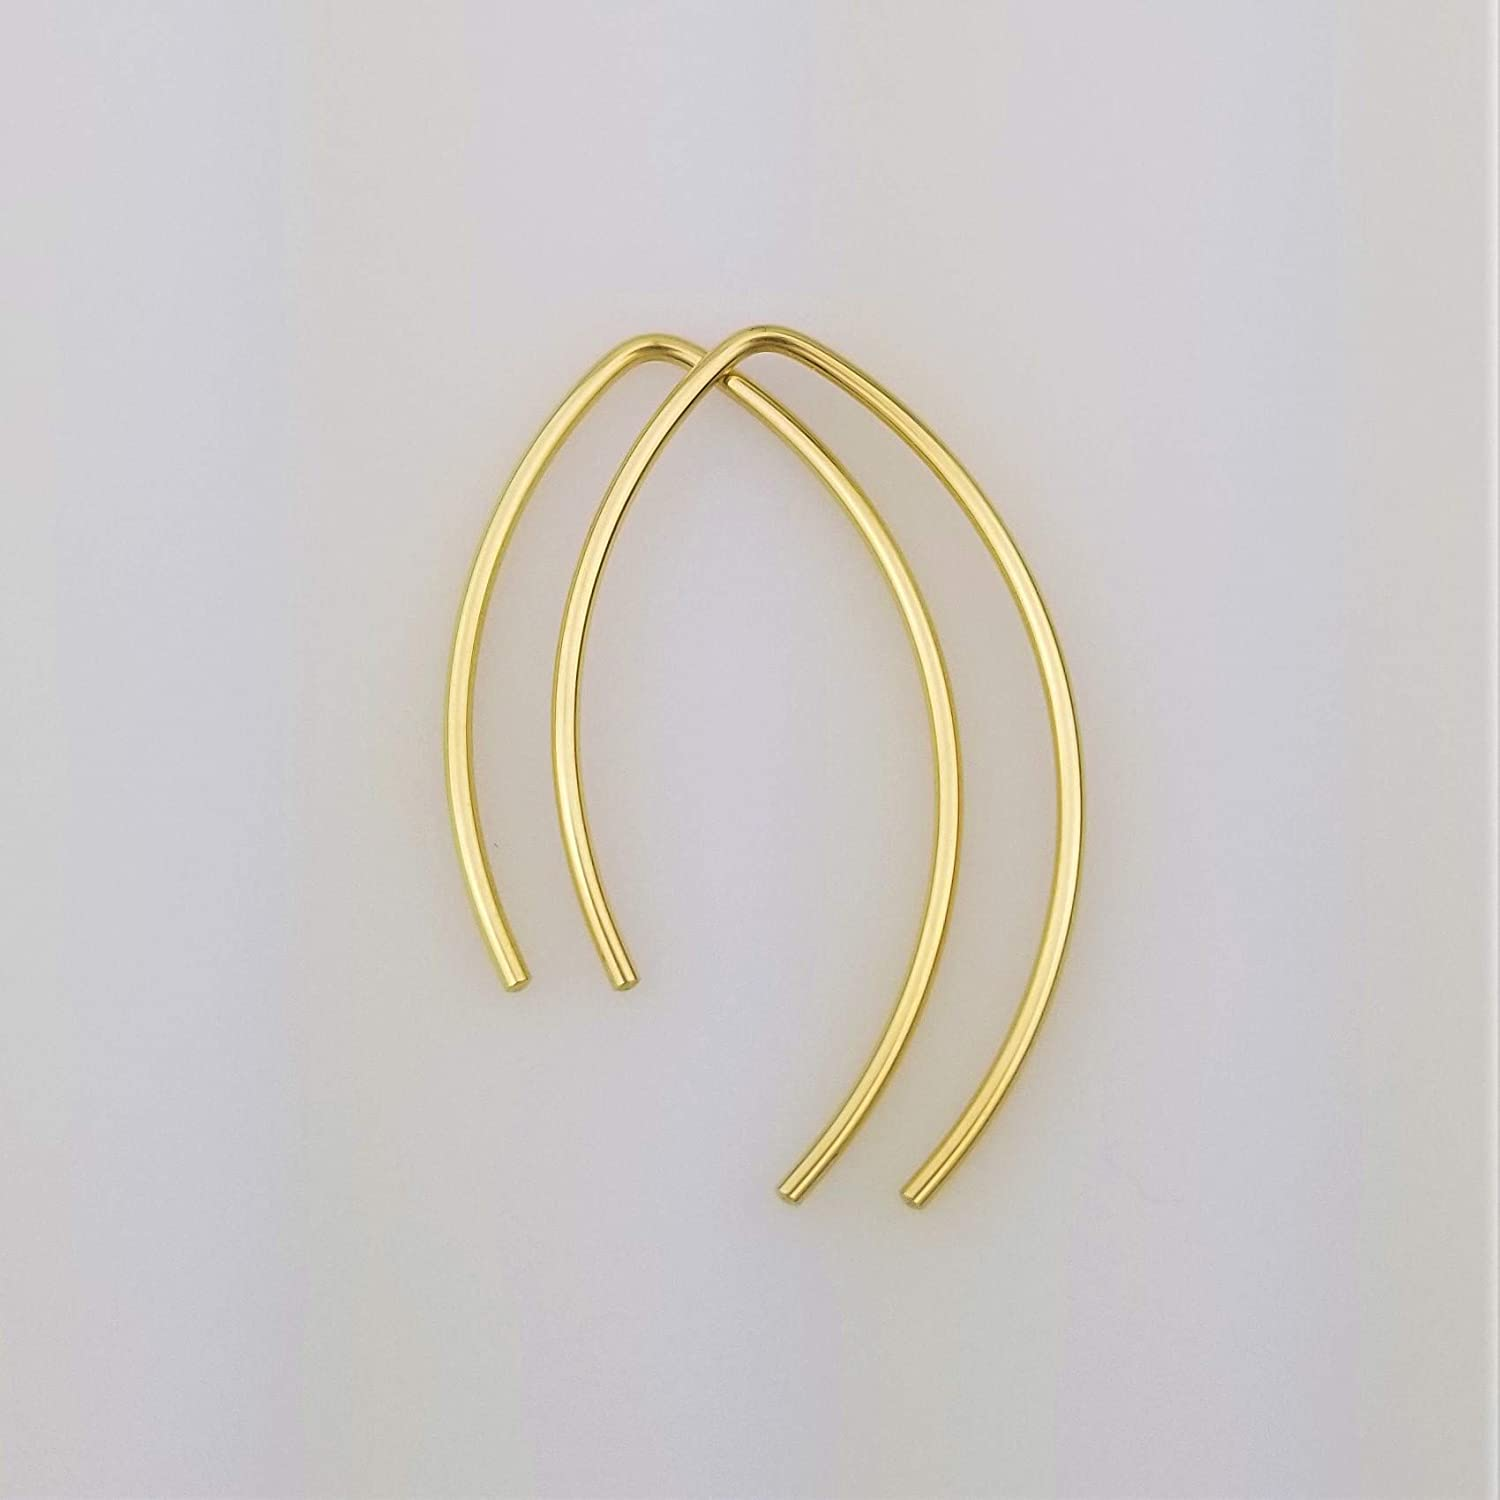 "1"" Solid 14k Gold Open Hoop Threader Earrings Gift for Women 61UC2ttjDEL._SL1500_"